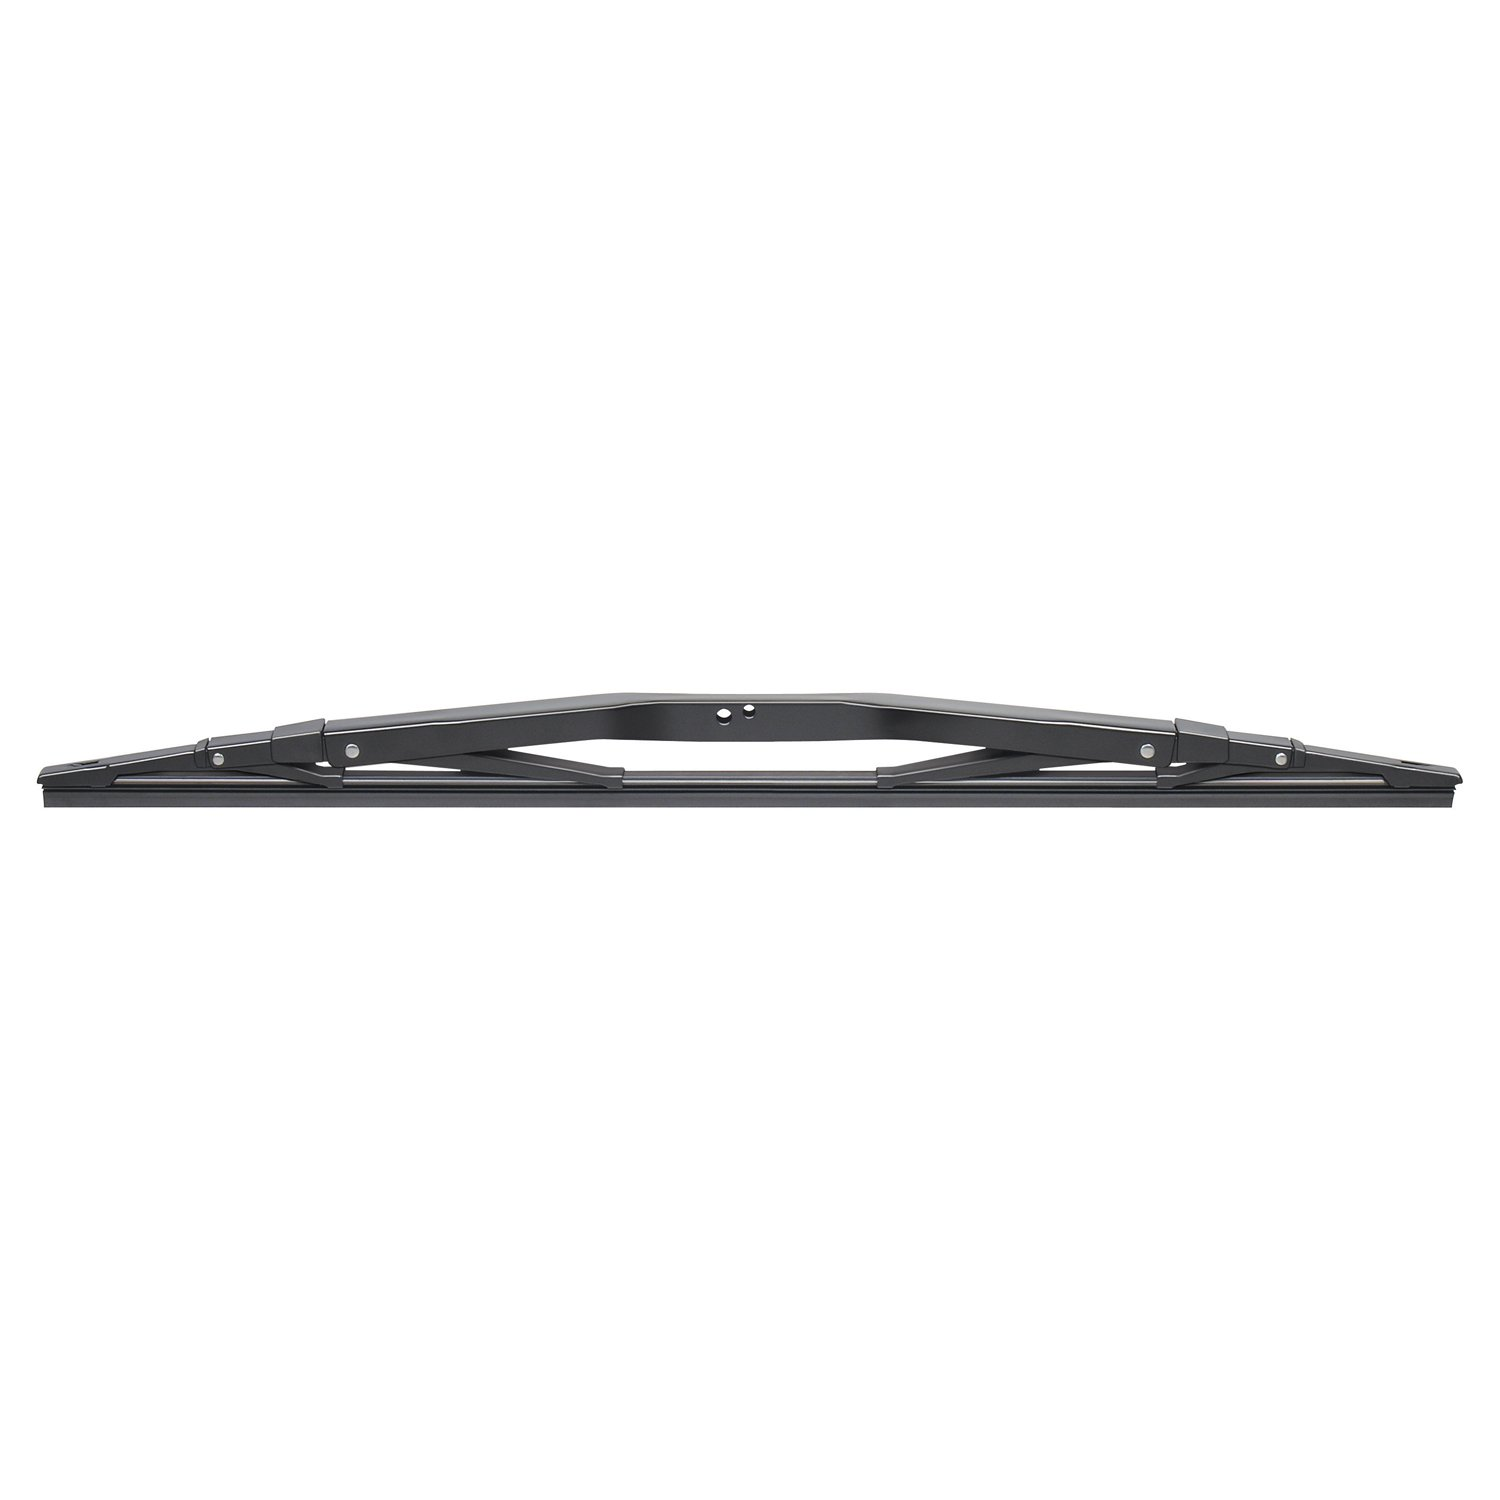 ACDelco 8-7326 Professional Heavy Duty Black Wide Saddle Wiper Blade for Curved Windshields, 32 in (Pack of 1)